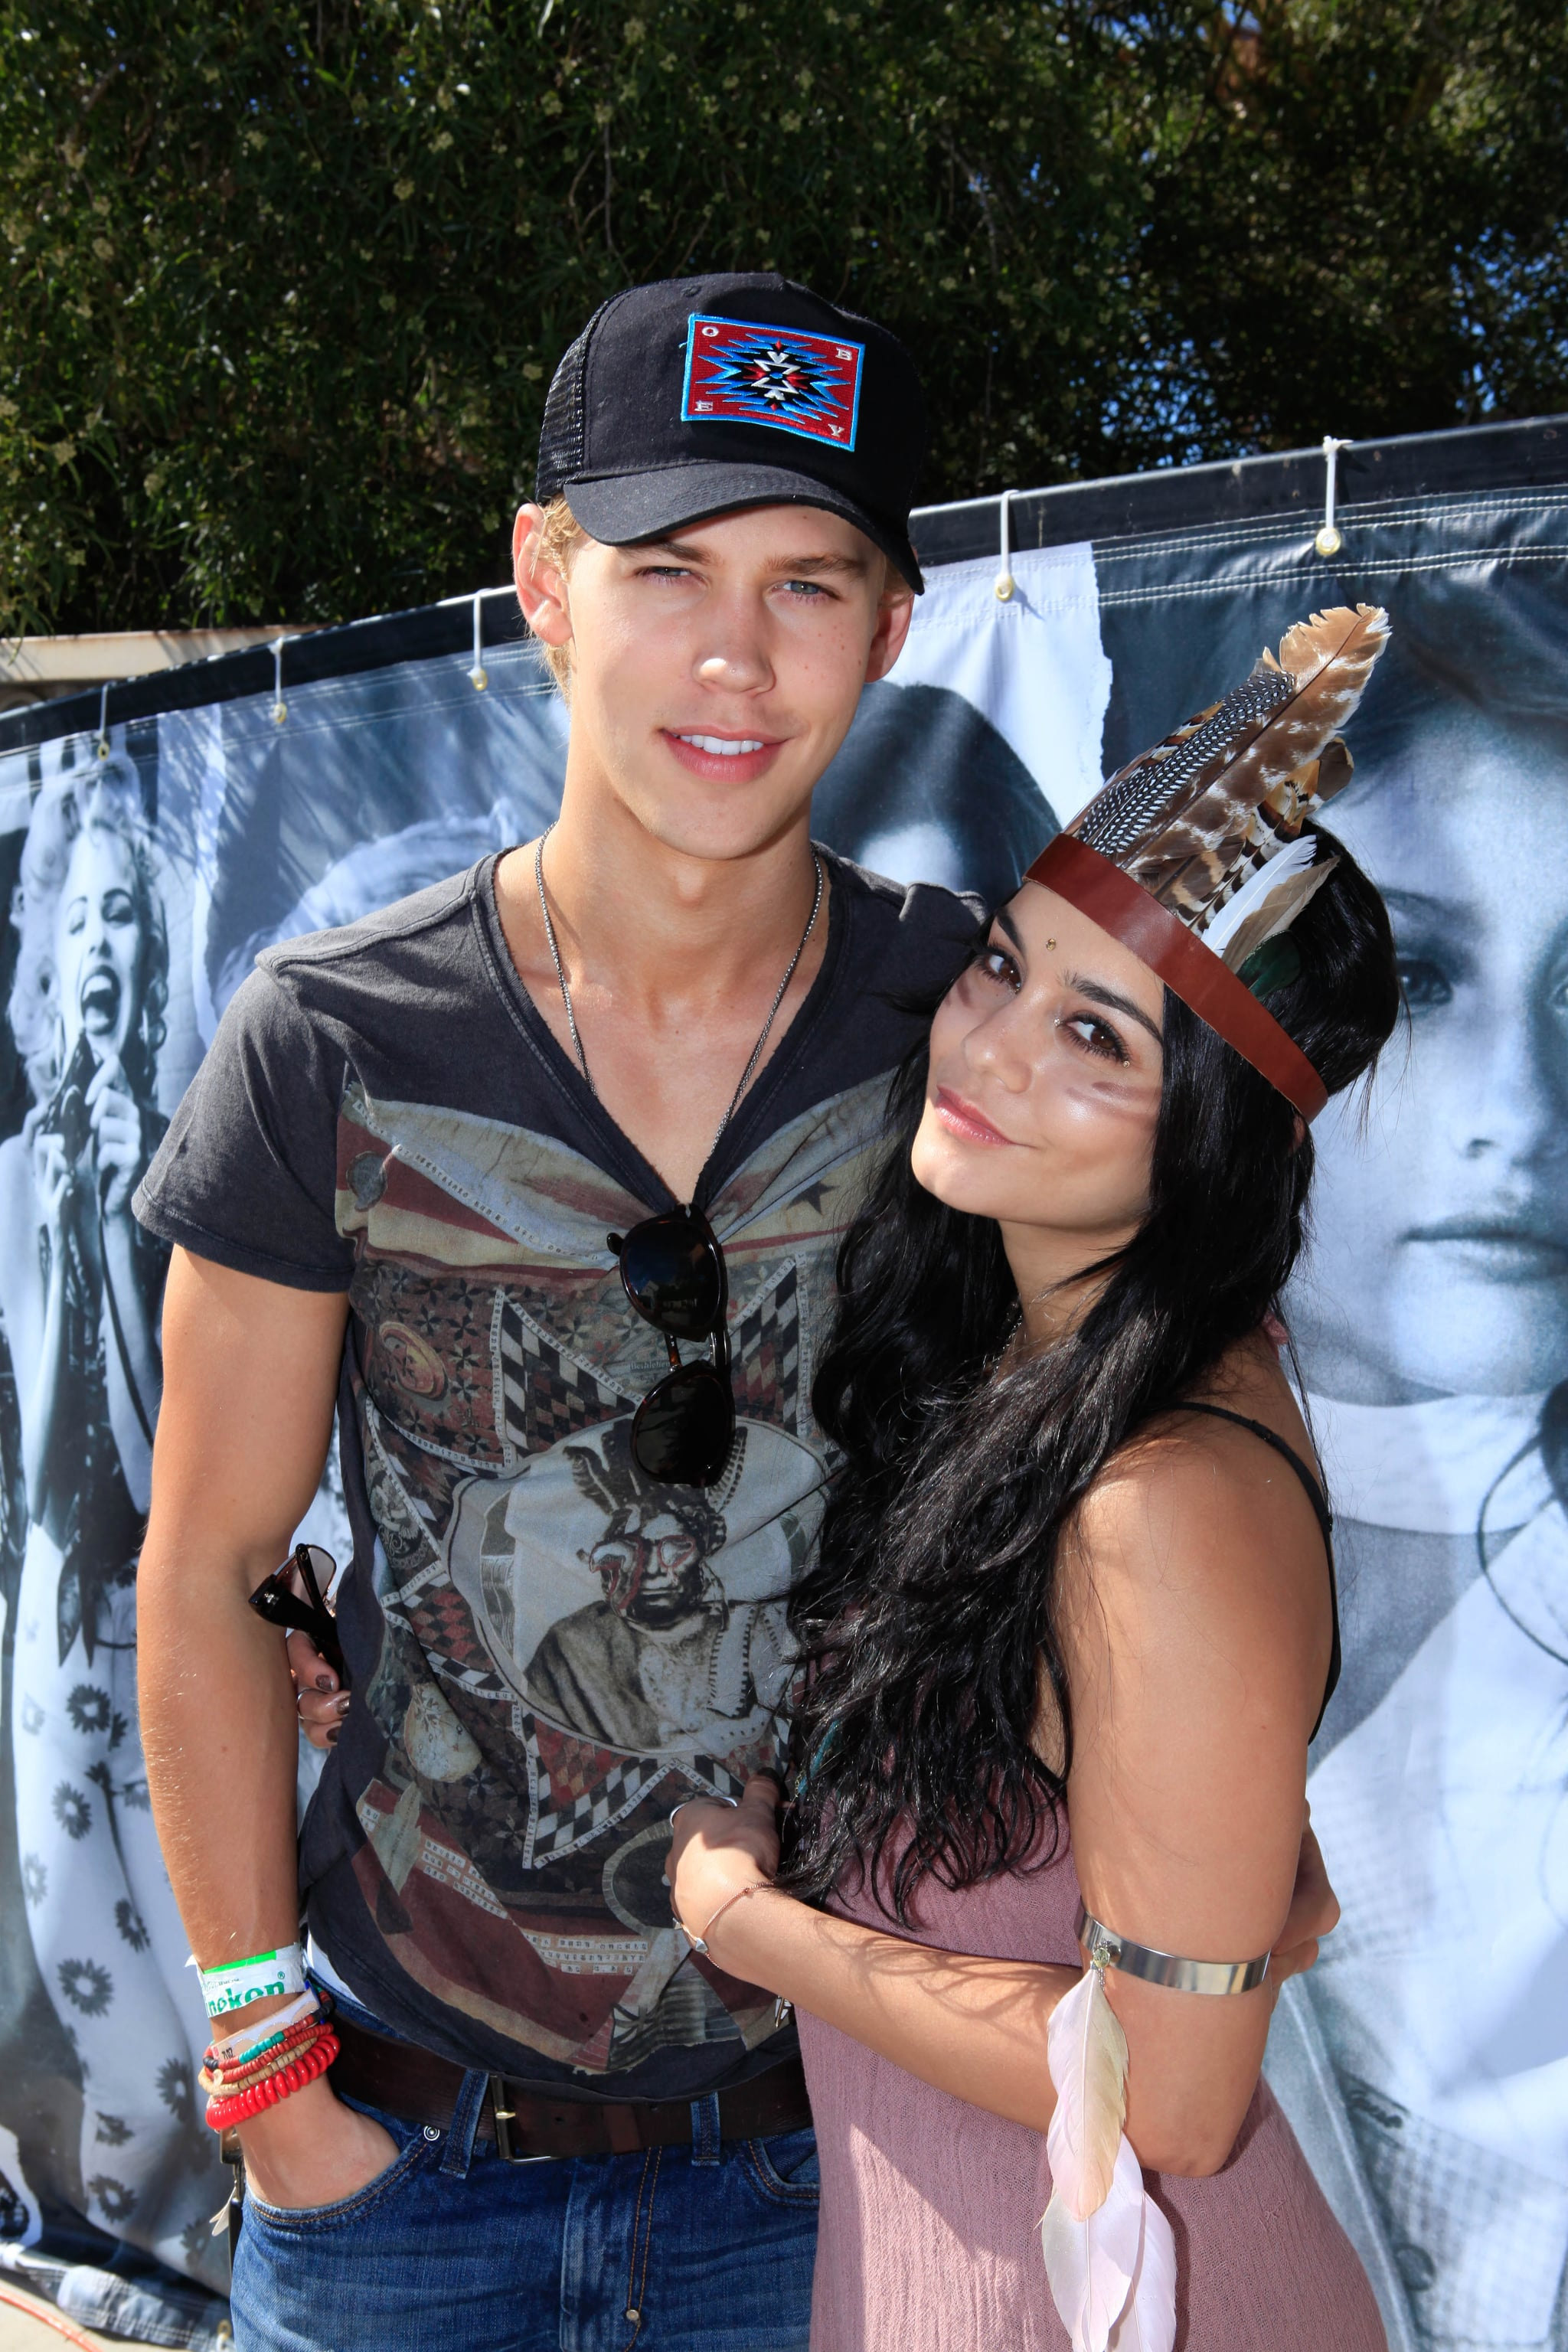 Vanessa Hudgens and her boyfriend Austin Butler cosied up during Guess's pool party in 2012.